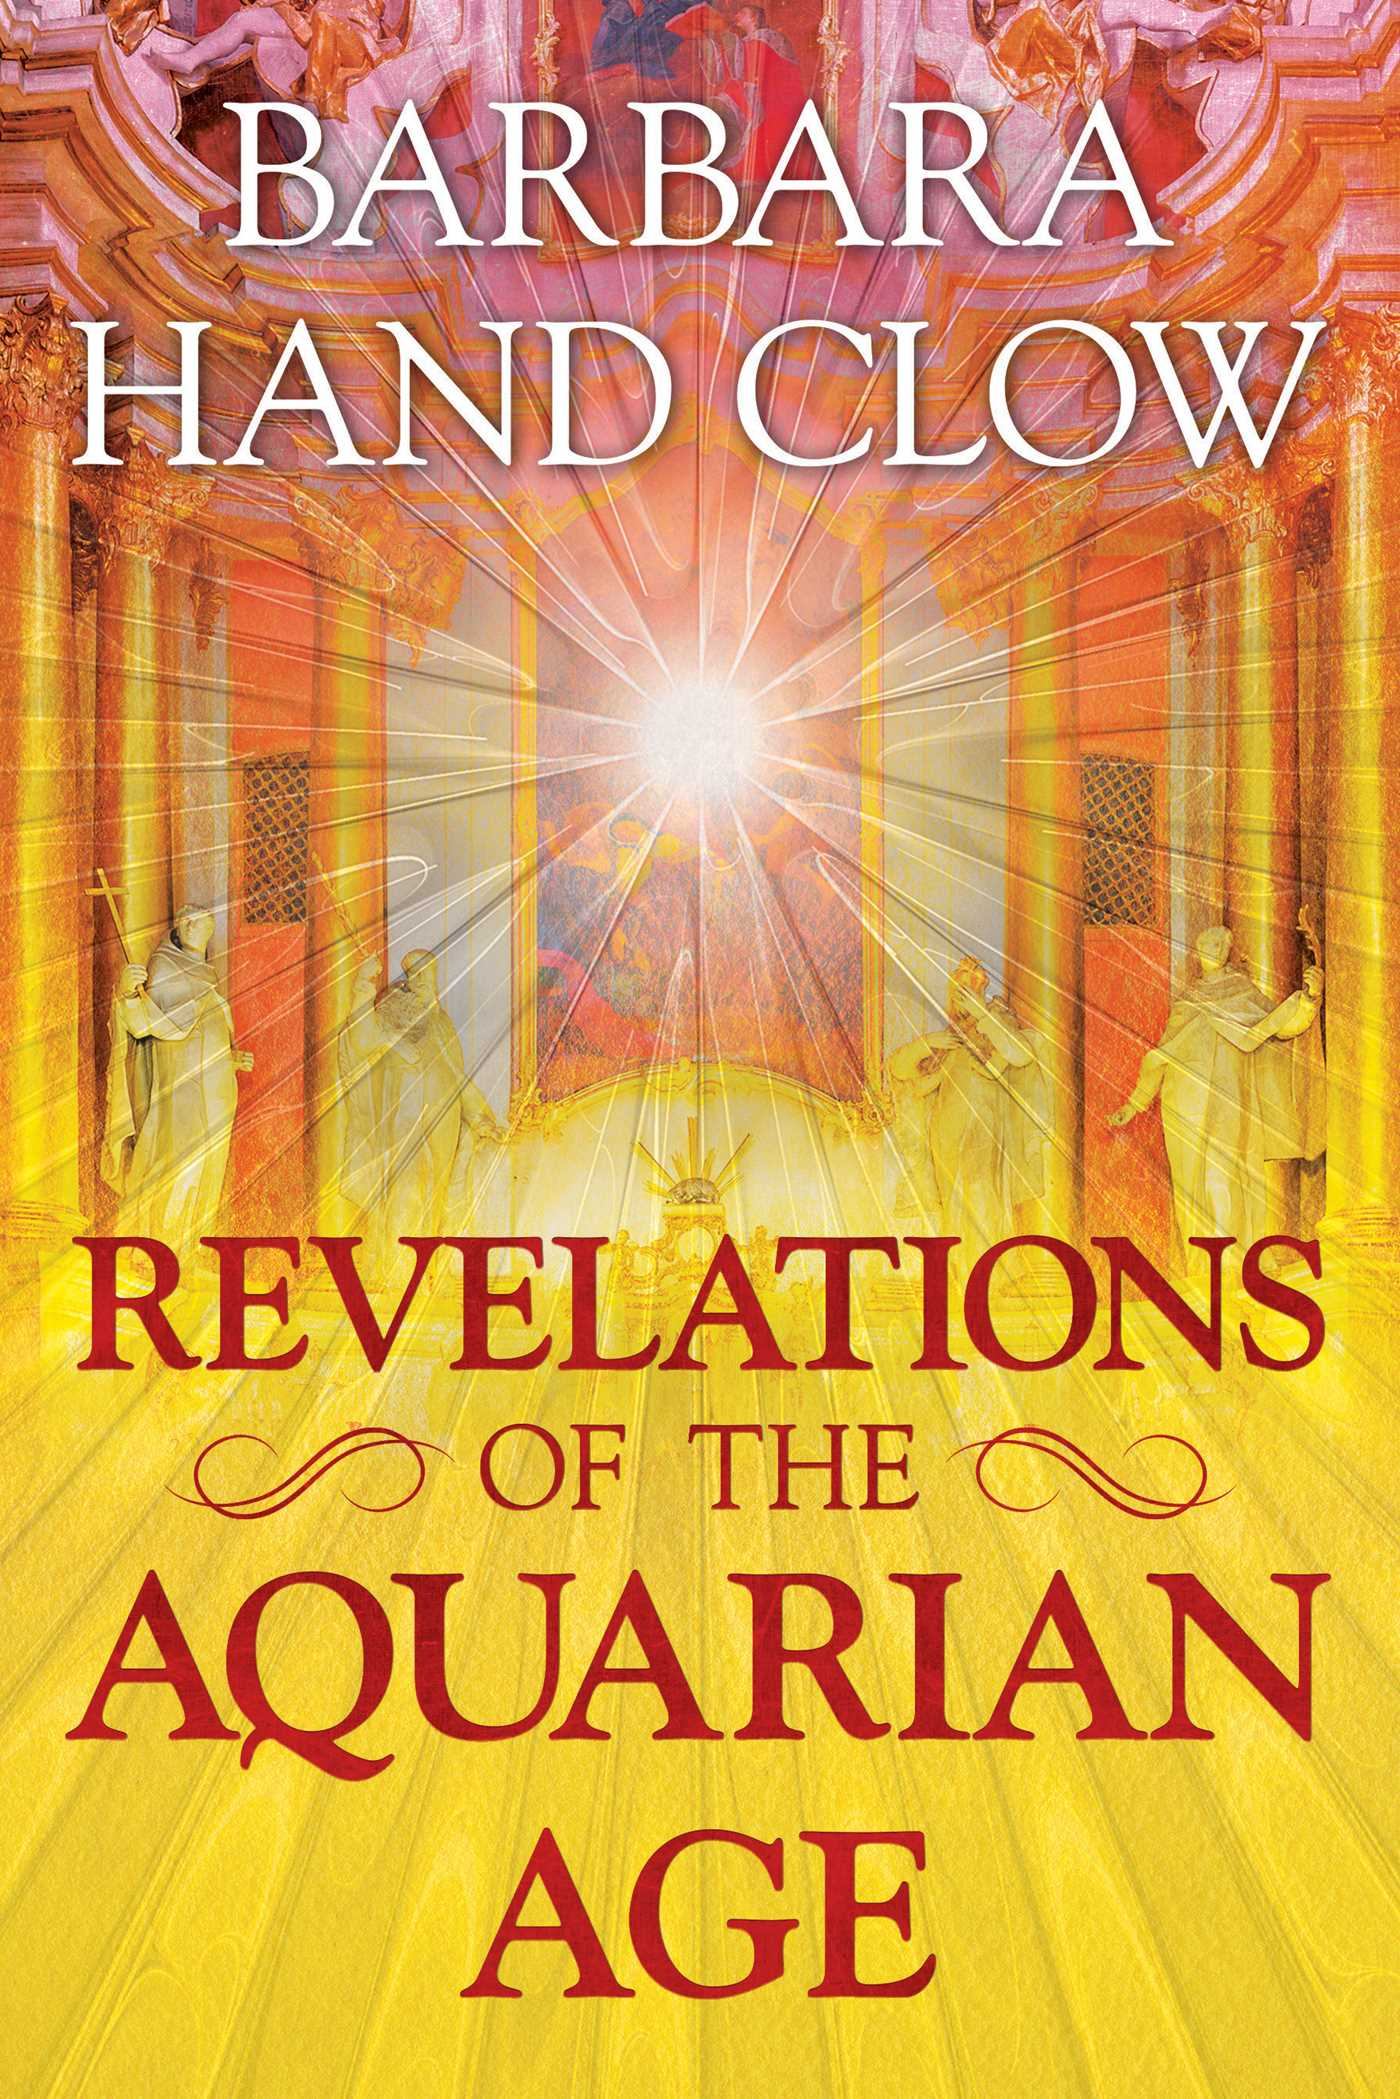 Revelations of the aquarian age 9781591432951 hr